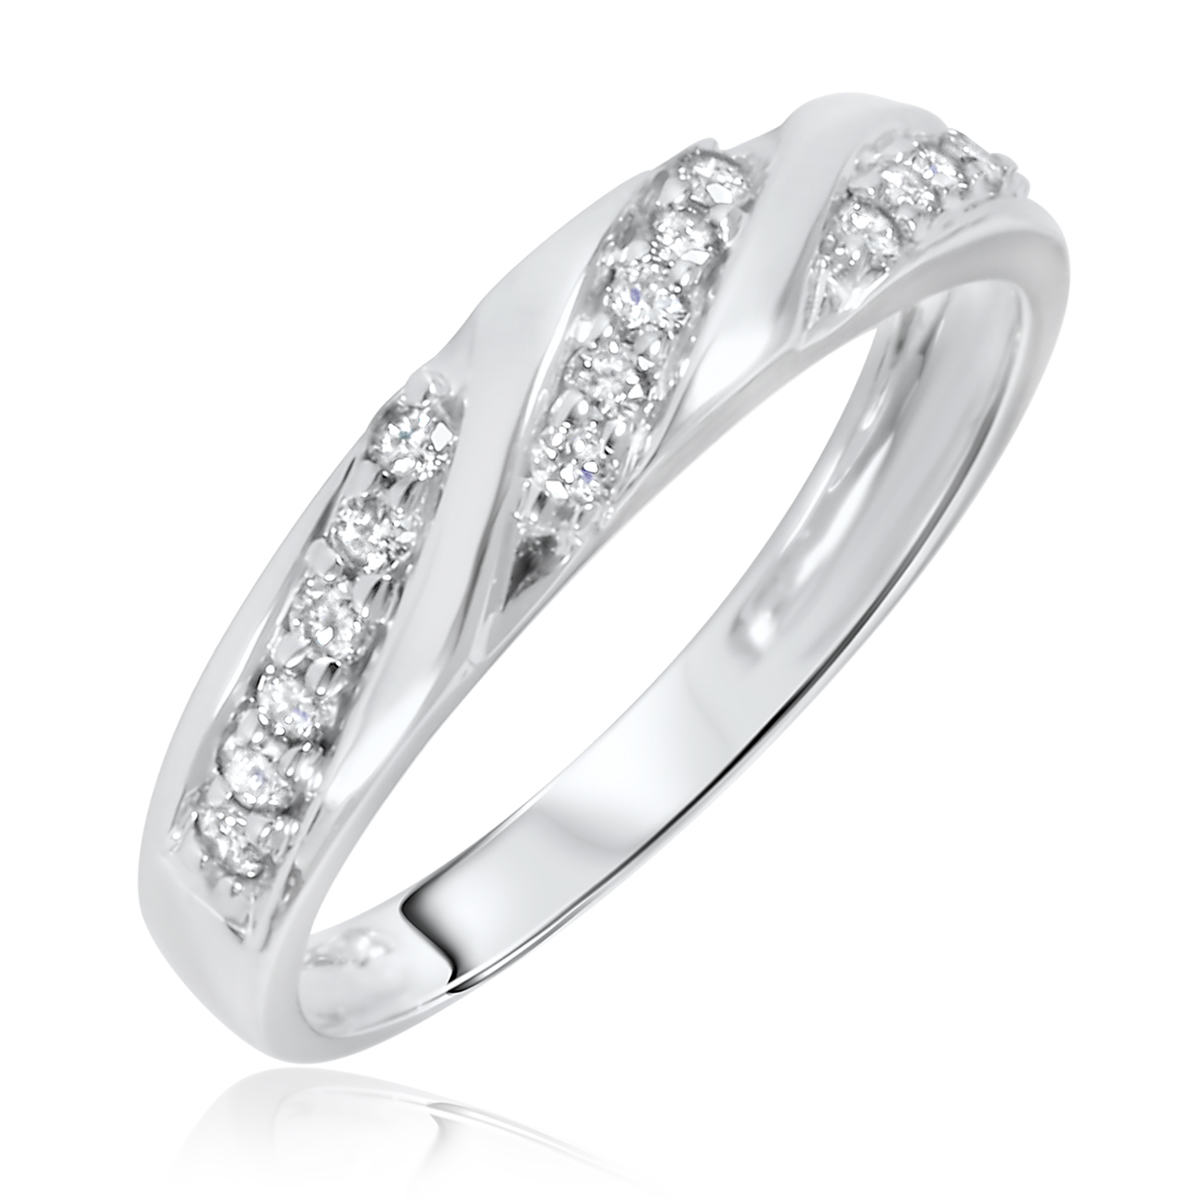 1 carat diamond trio wedding ring set 10k white gold my trio rings bt168w10k - Elegant Wedding Rings